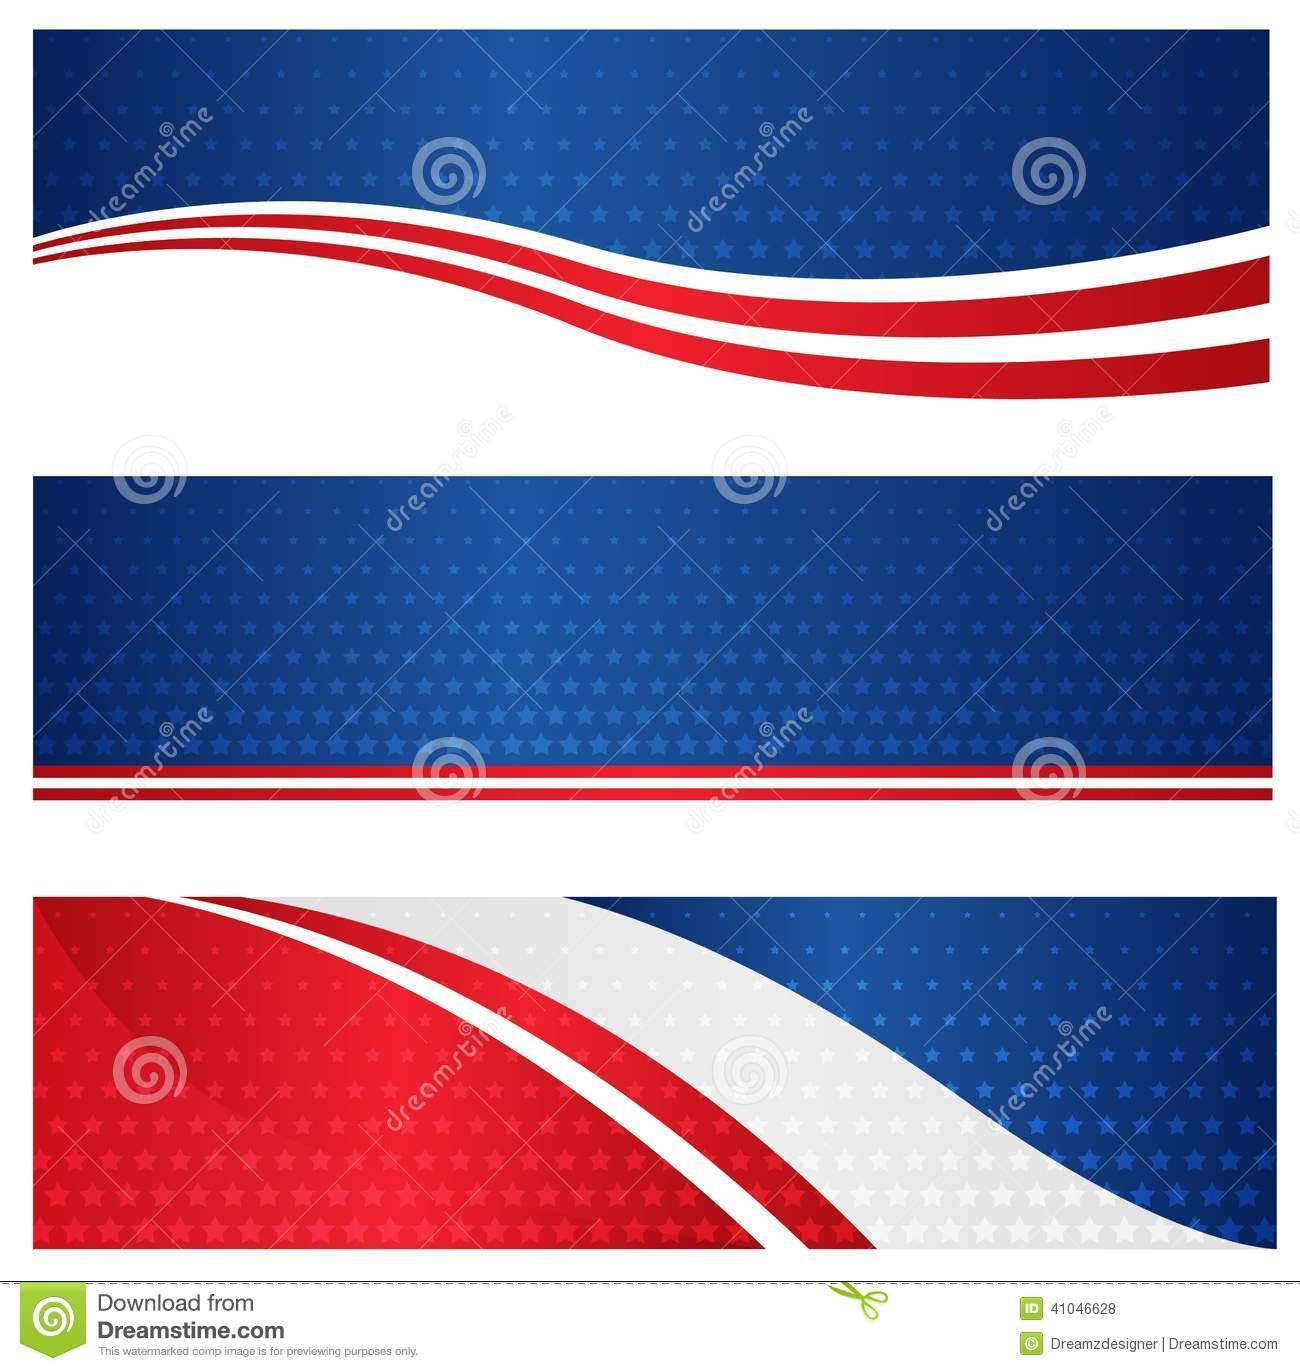 ... blue American flag / stars and stripes web banner / header collection